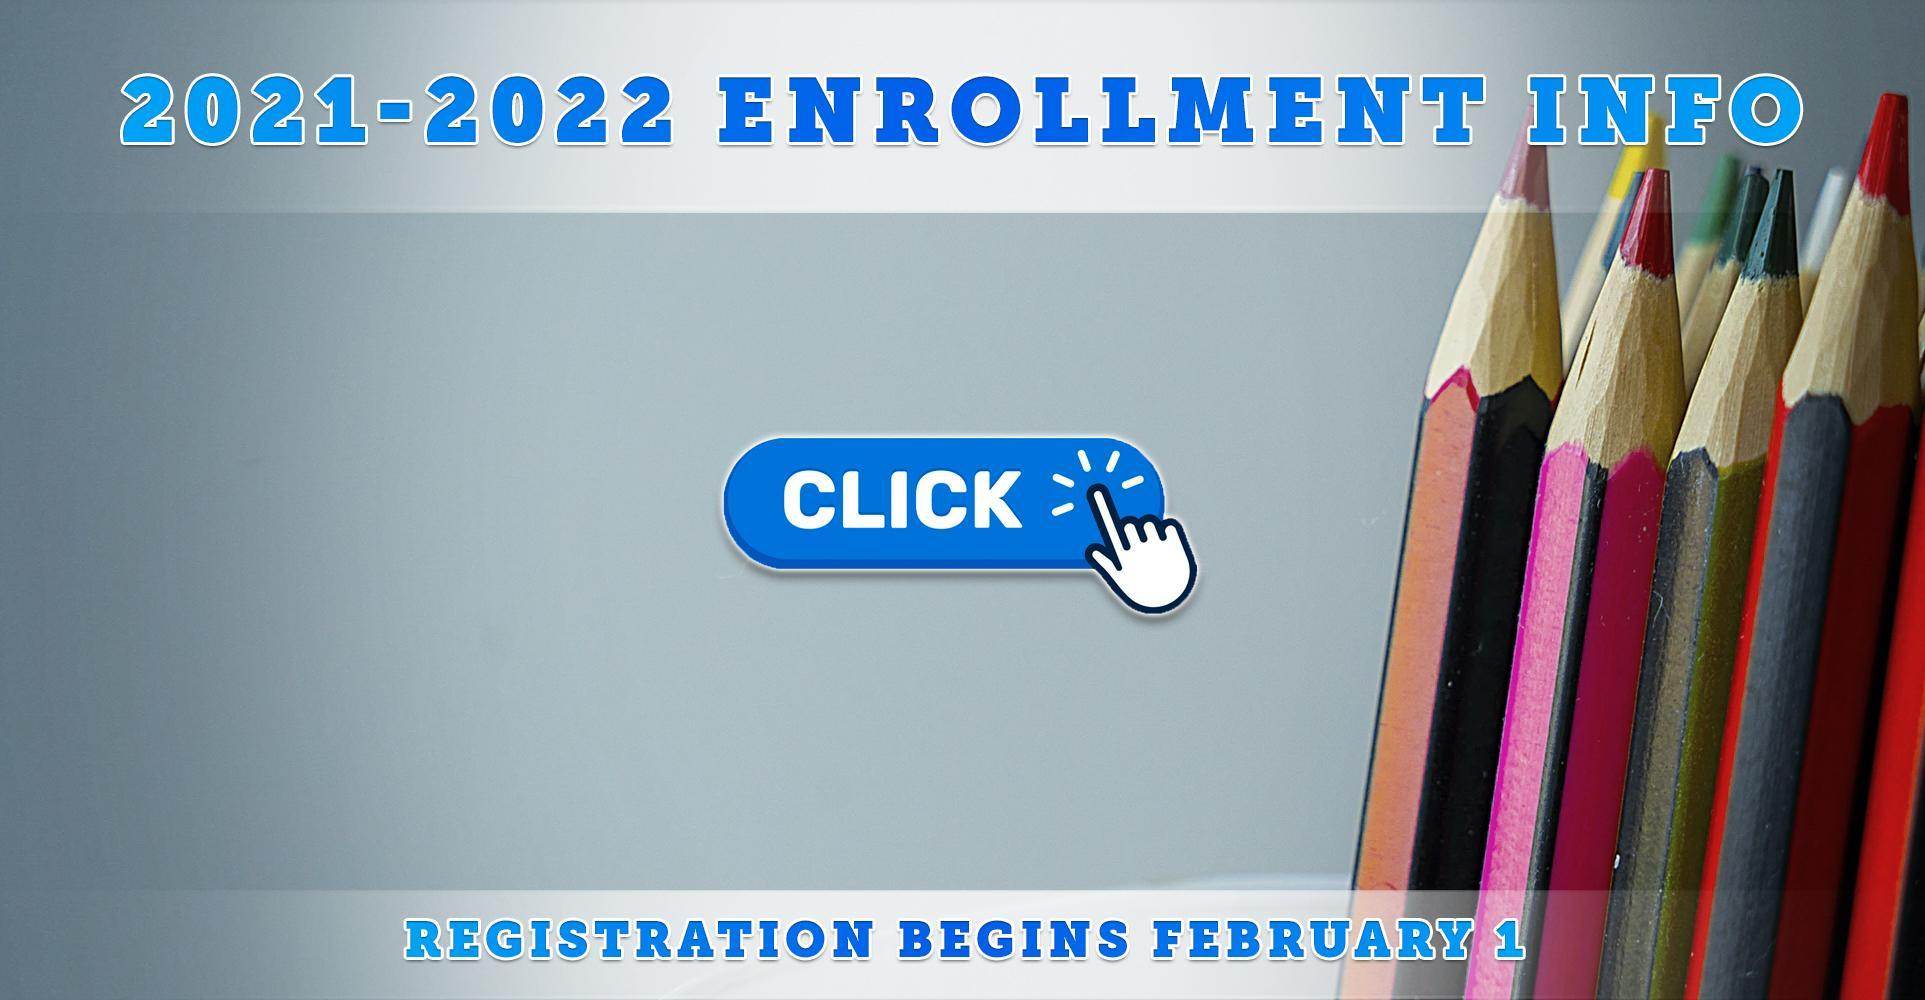 2021-2022 Online Enrollment Information: Begins February 1, 2021